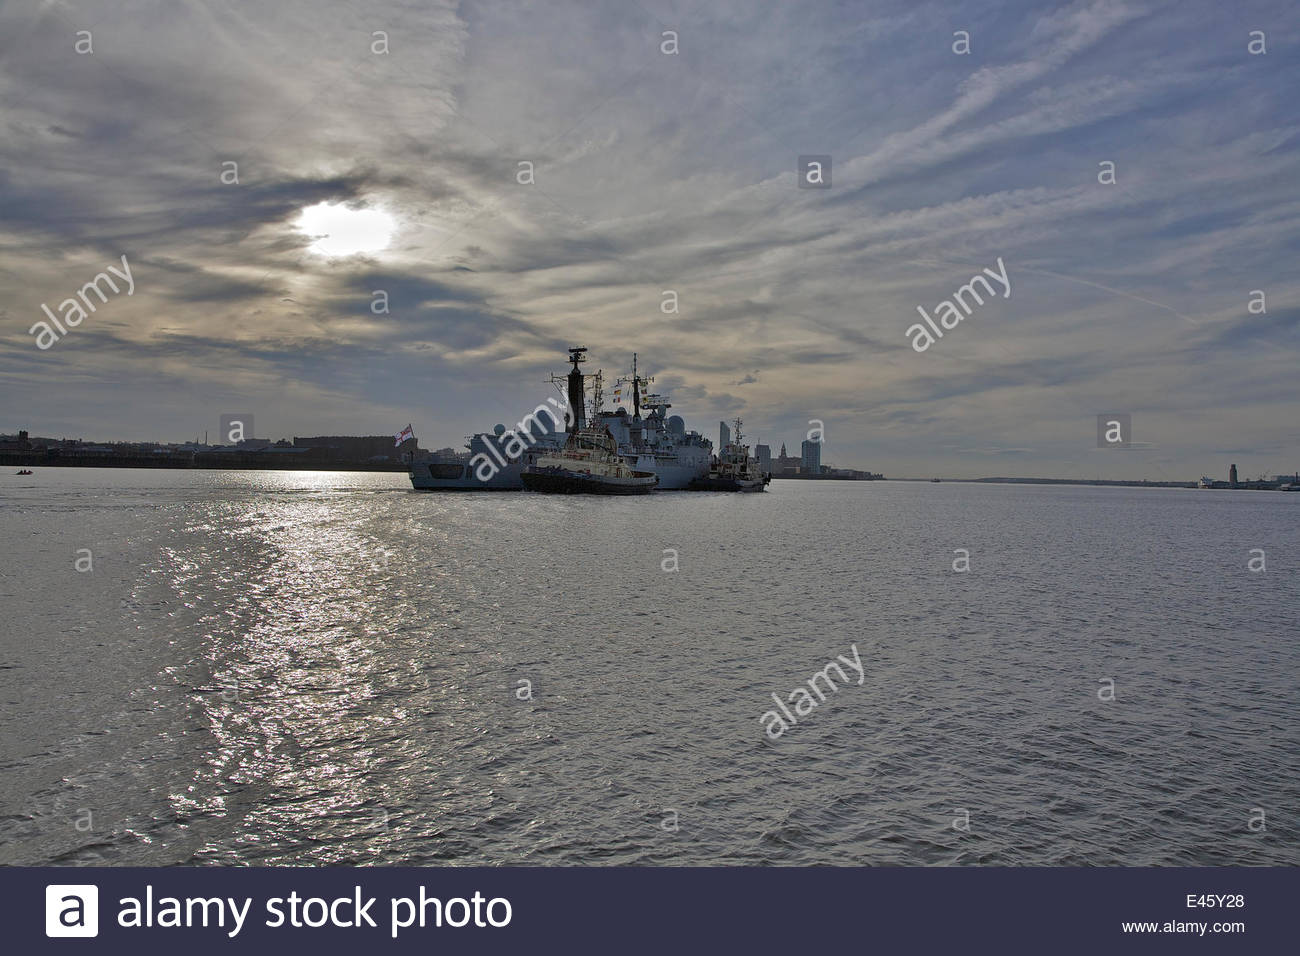 Tugs 'Switzer Maltby' and 'Switzer Stanlow' assisting 'HMS Liverpool' as she arrives in - Stock Image